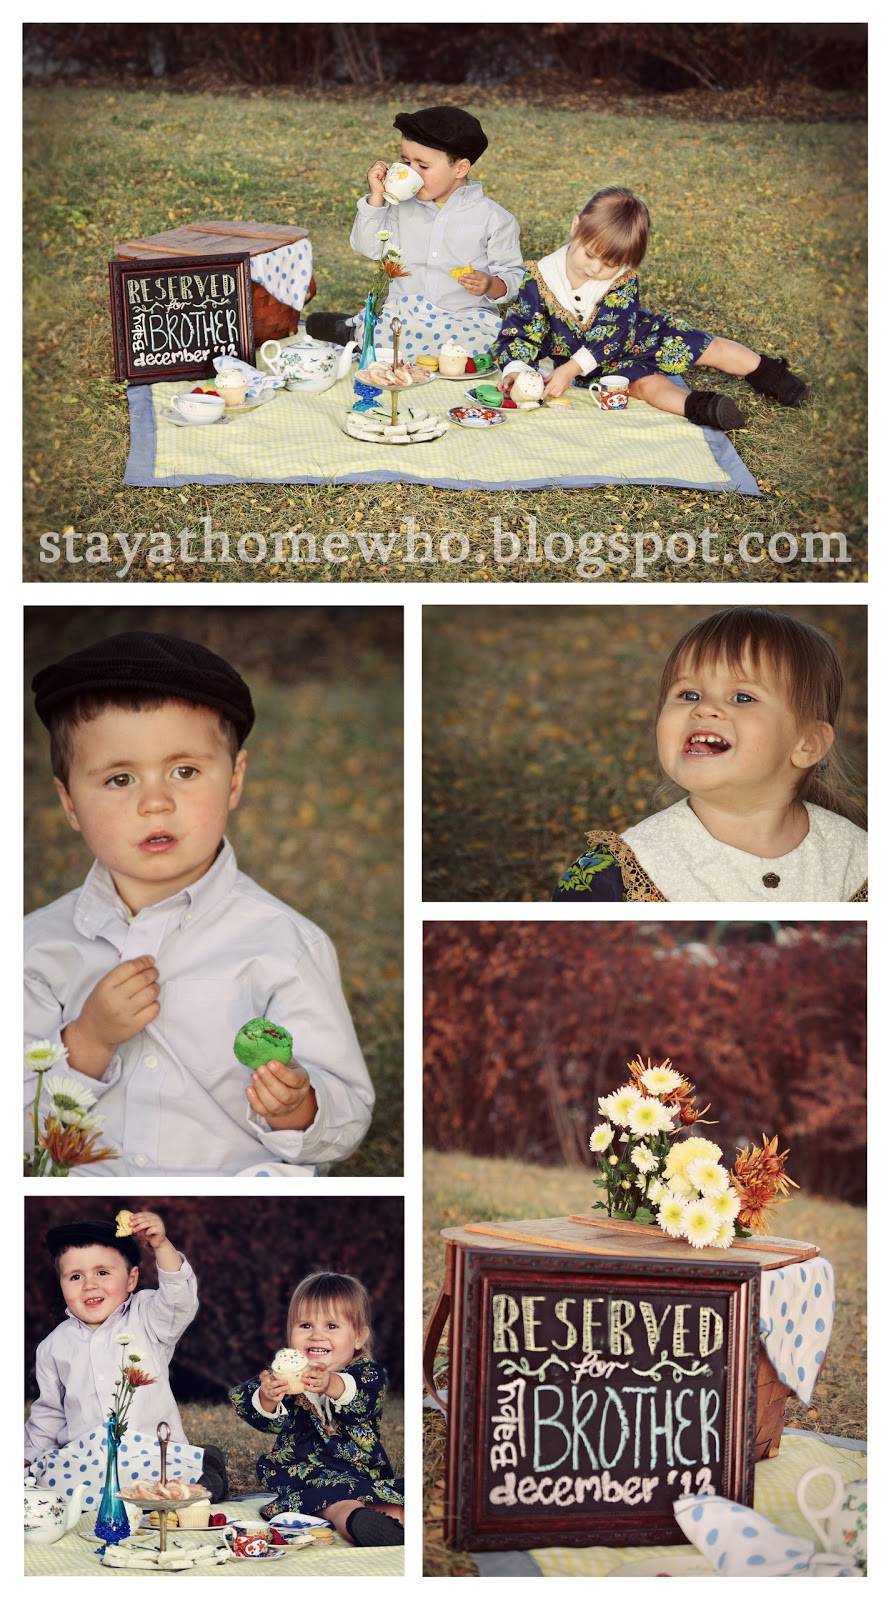 Stay at Home Who Creative Pregnancy Announcements – Creative Baby Announcement Photos